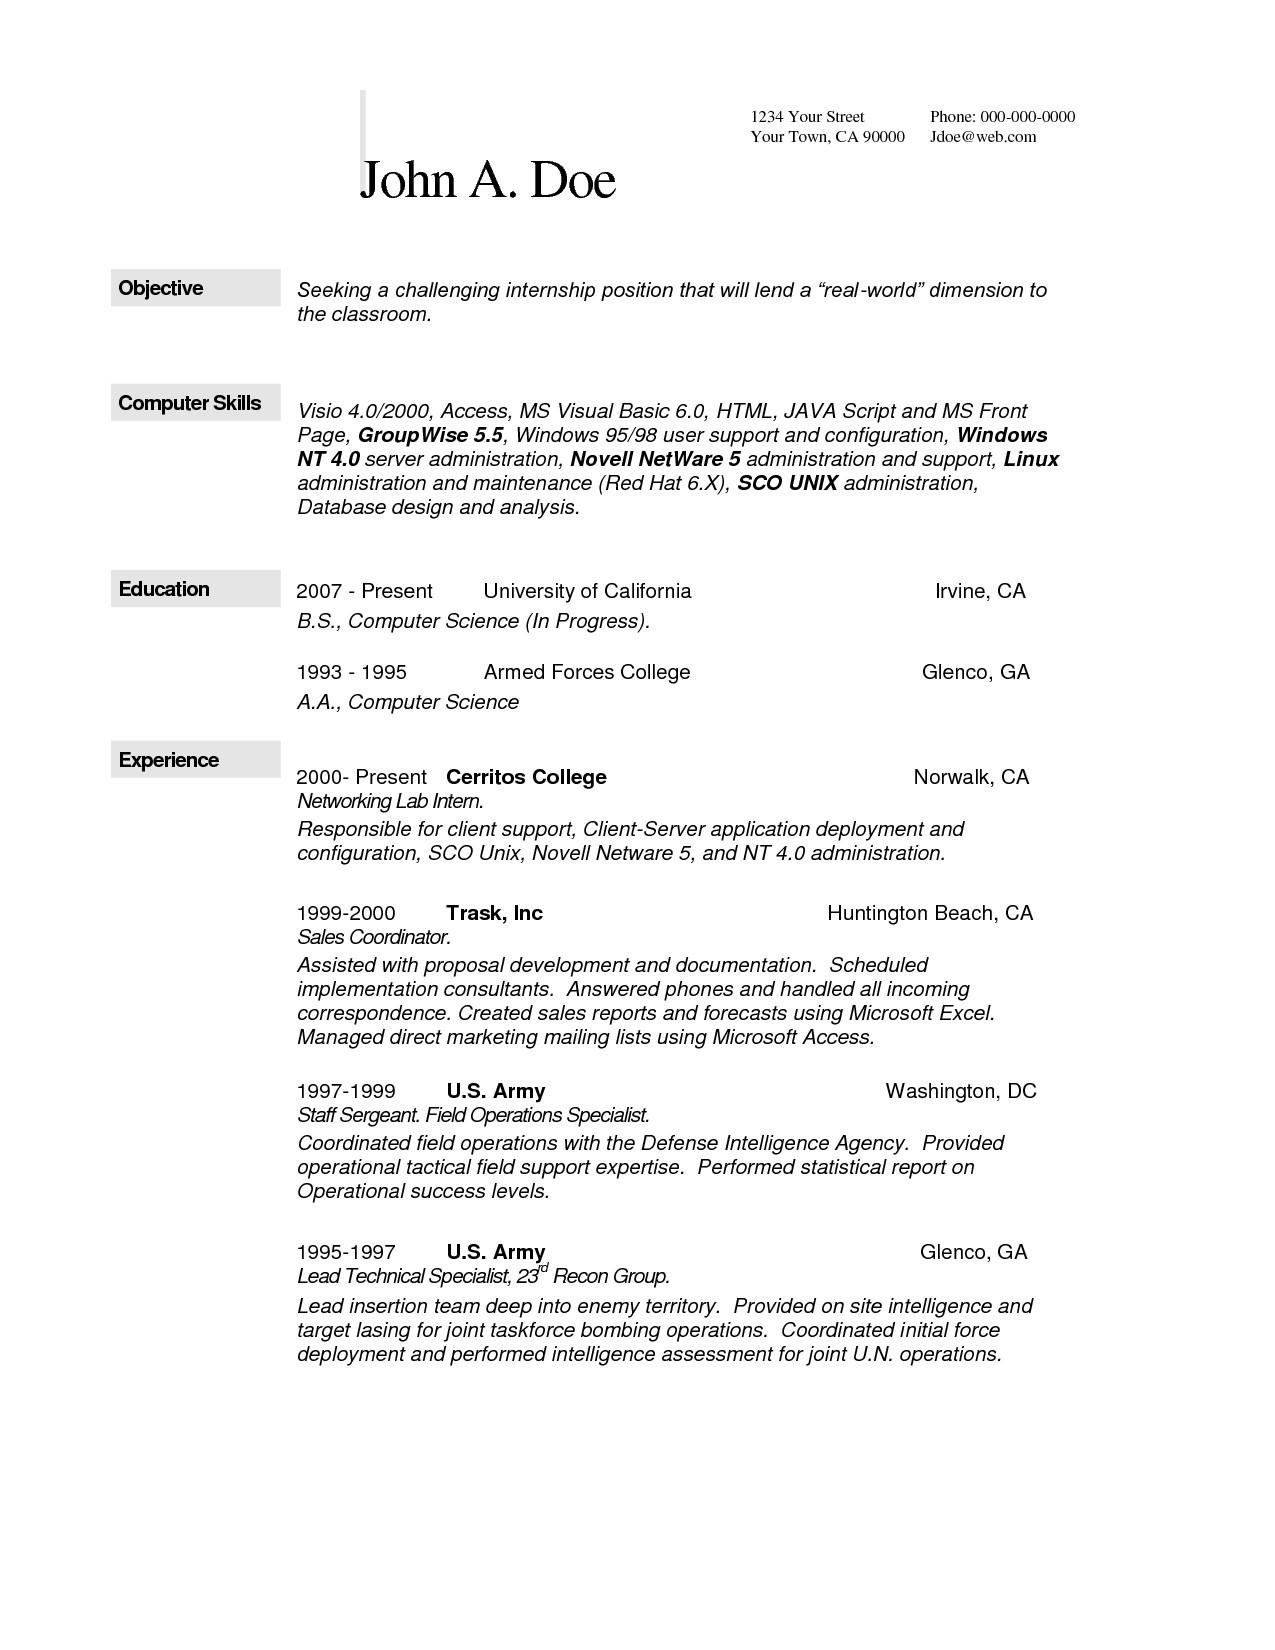 Resume Template for Computer Science - Awesome Omputer Science Resume Example